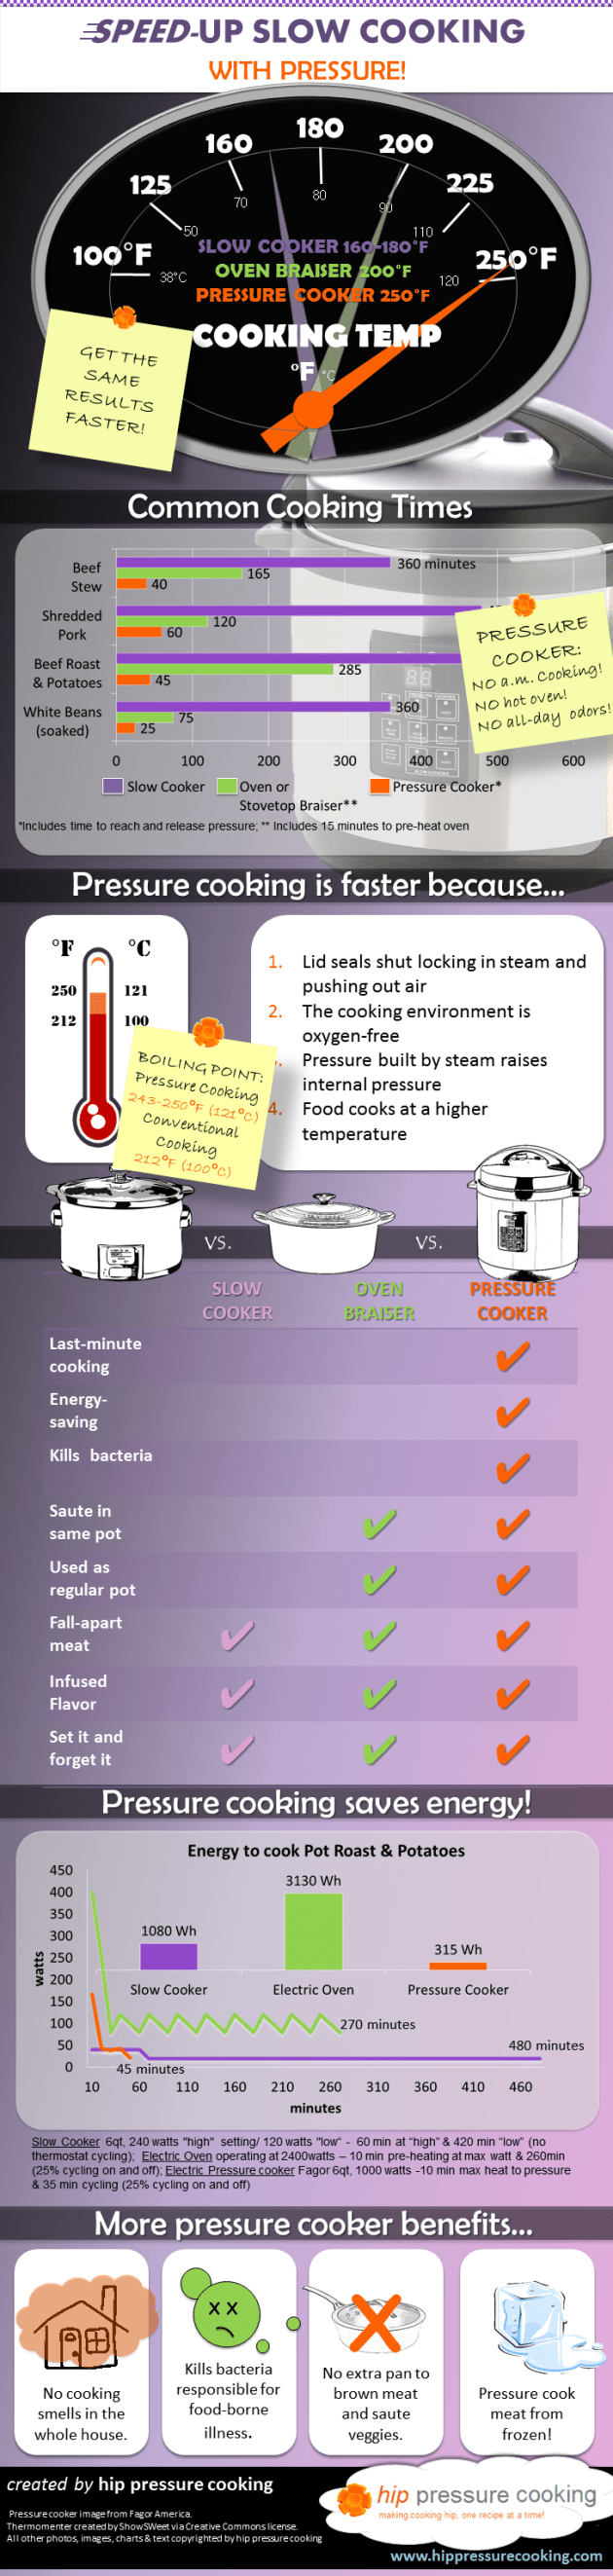 INFOGRAPHIC: Speed-up Slow Cooking with pressure! No surprise that pressure cooking is faster than slow cooking, but did you know that you can get the same fall-apart tender results using a fraction of the energy too? PLEASE SHARE!